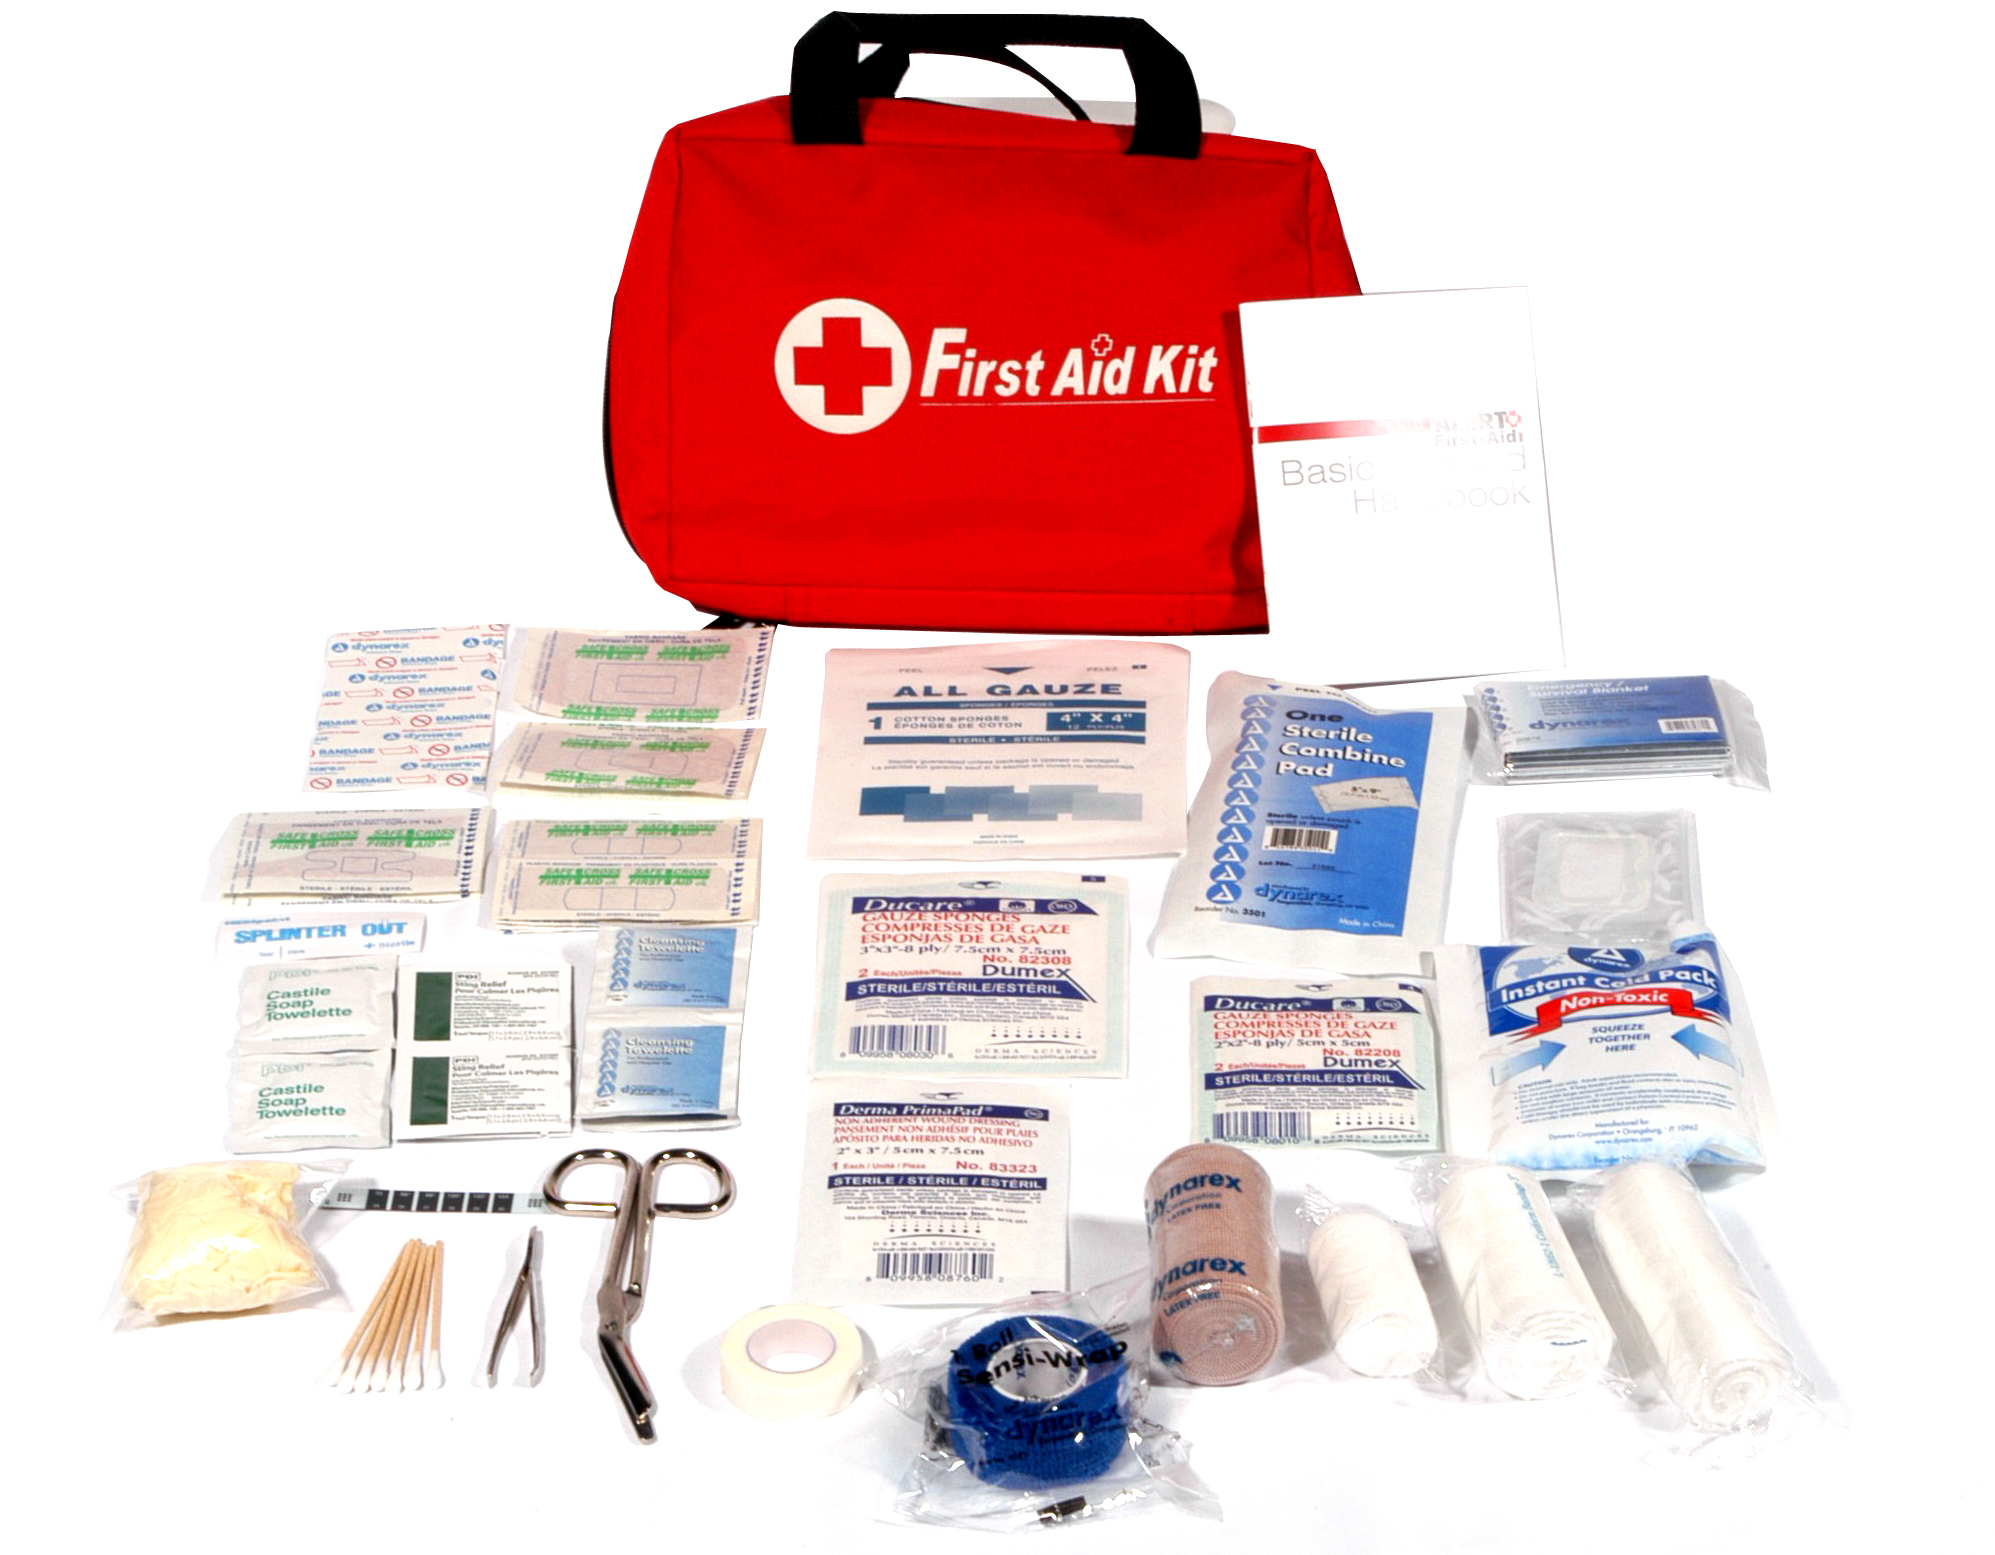 Childcare First Aid Kit image